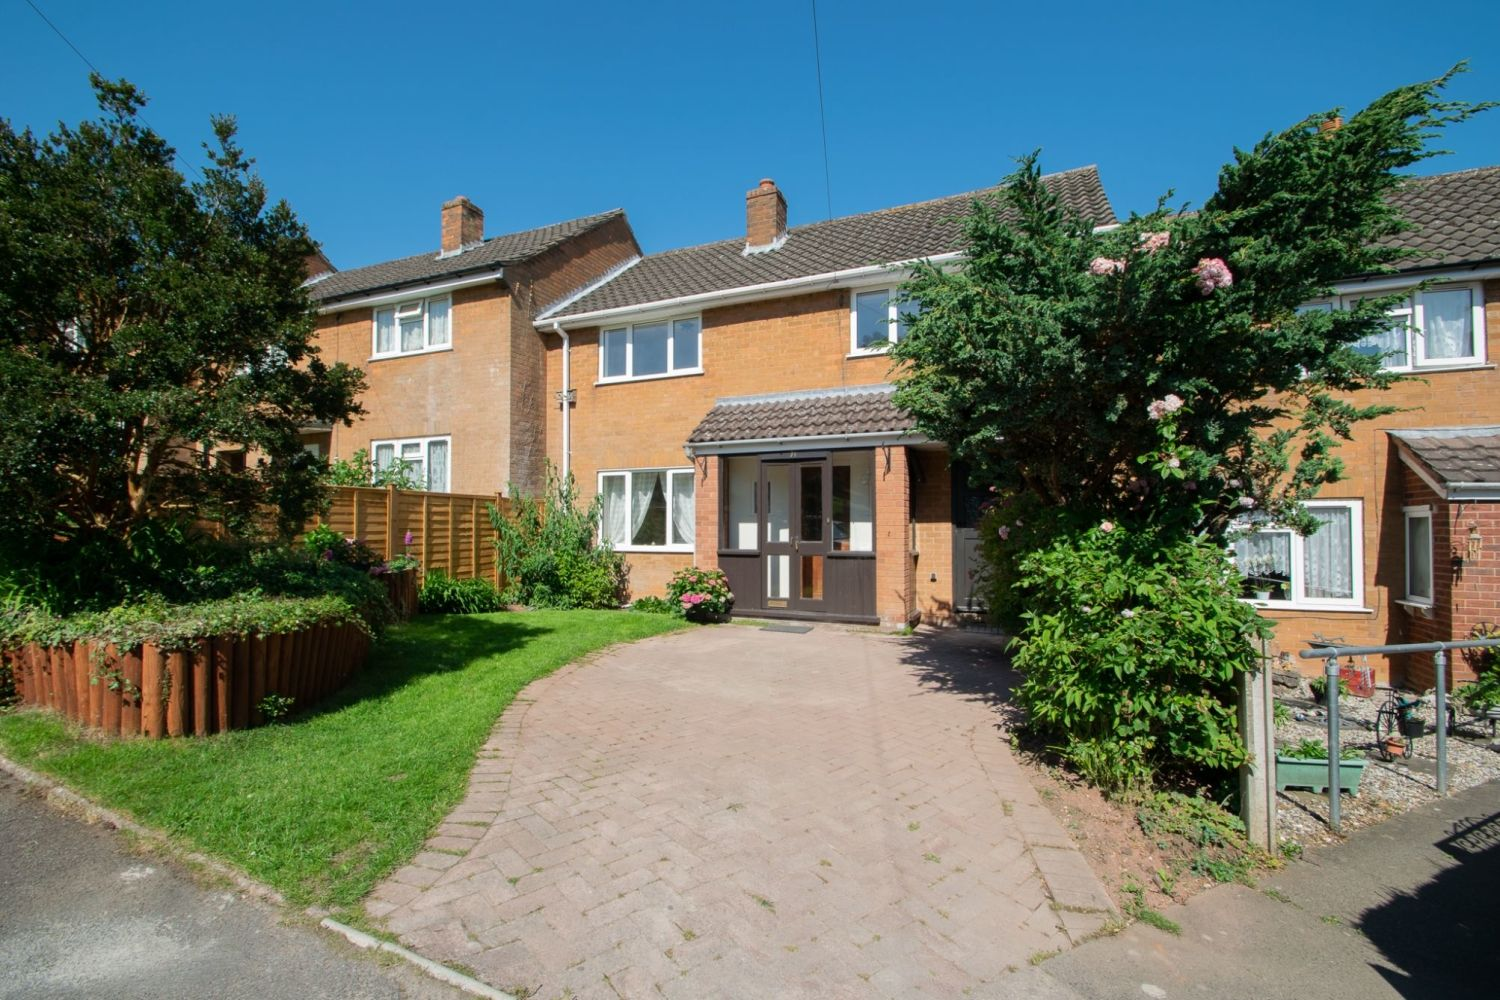 3 bed terraced for sale in Waverley Crescent, Romsley  - Property Image 1